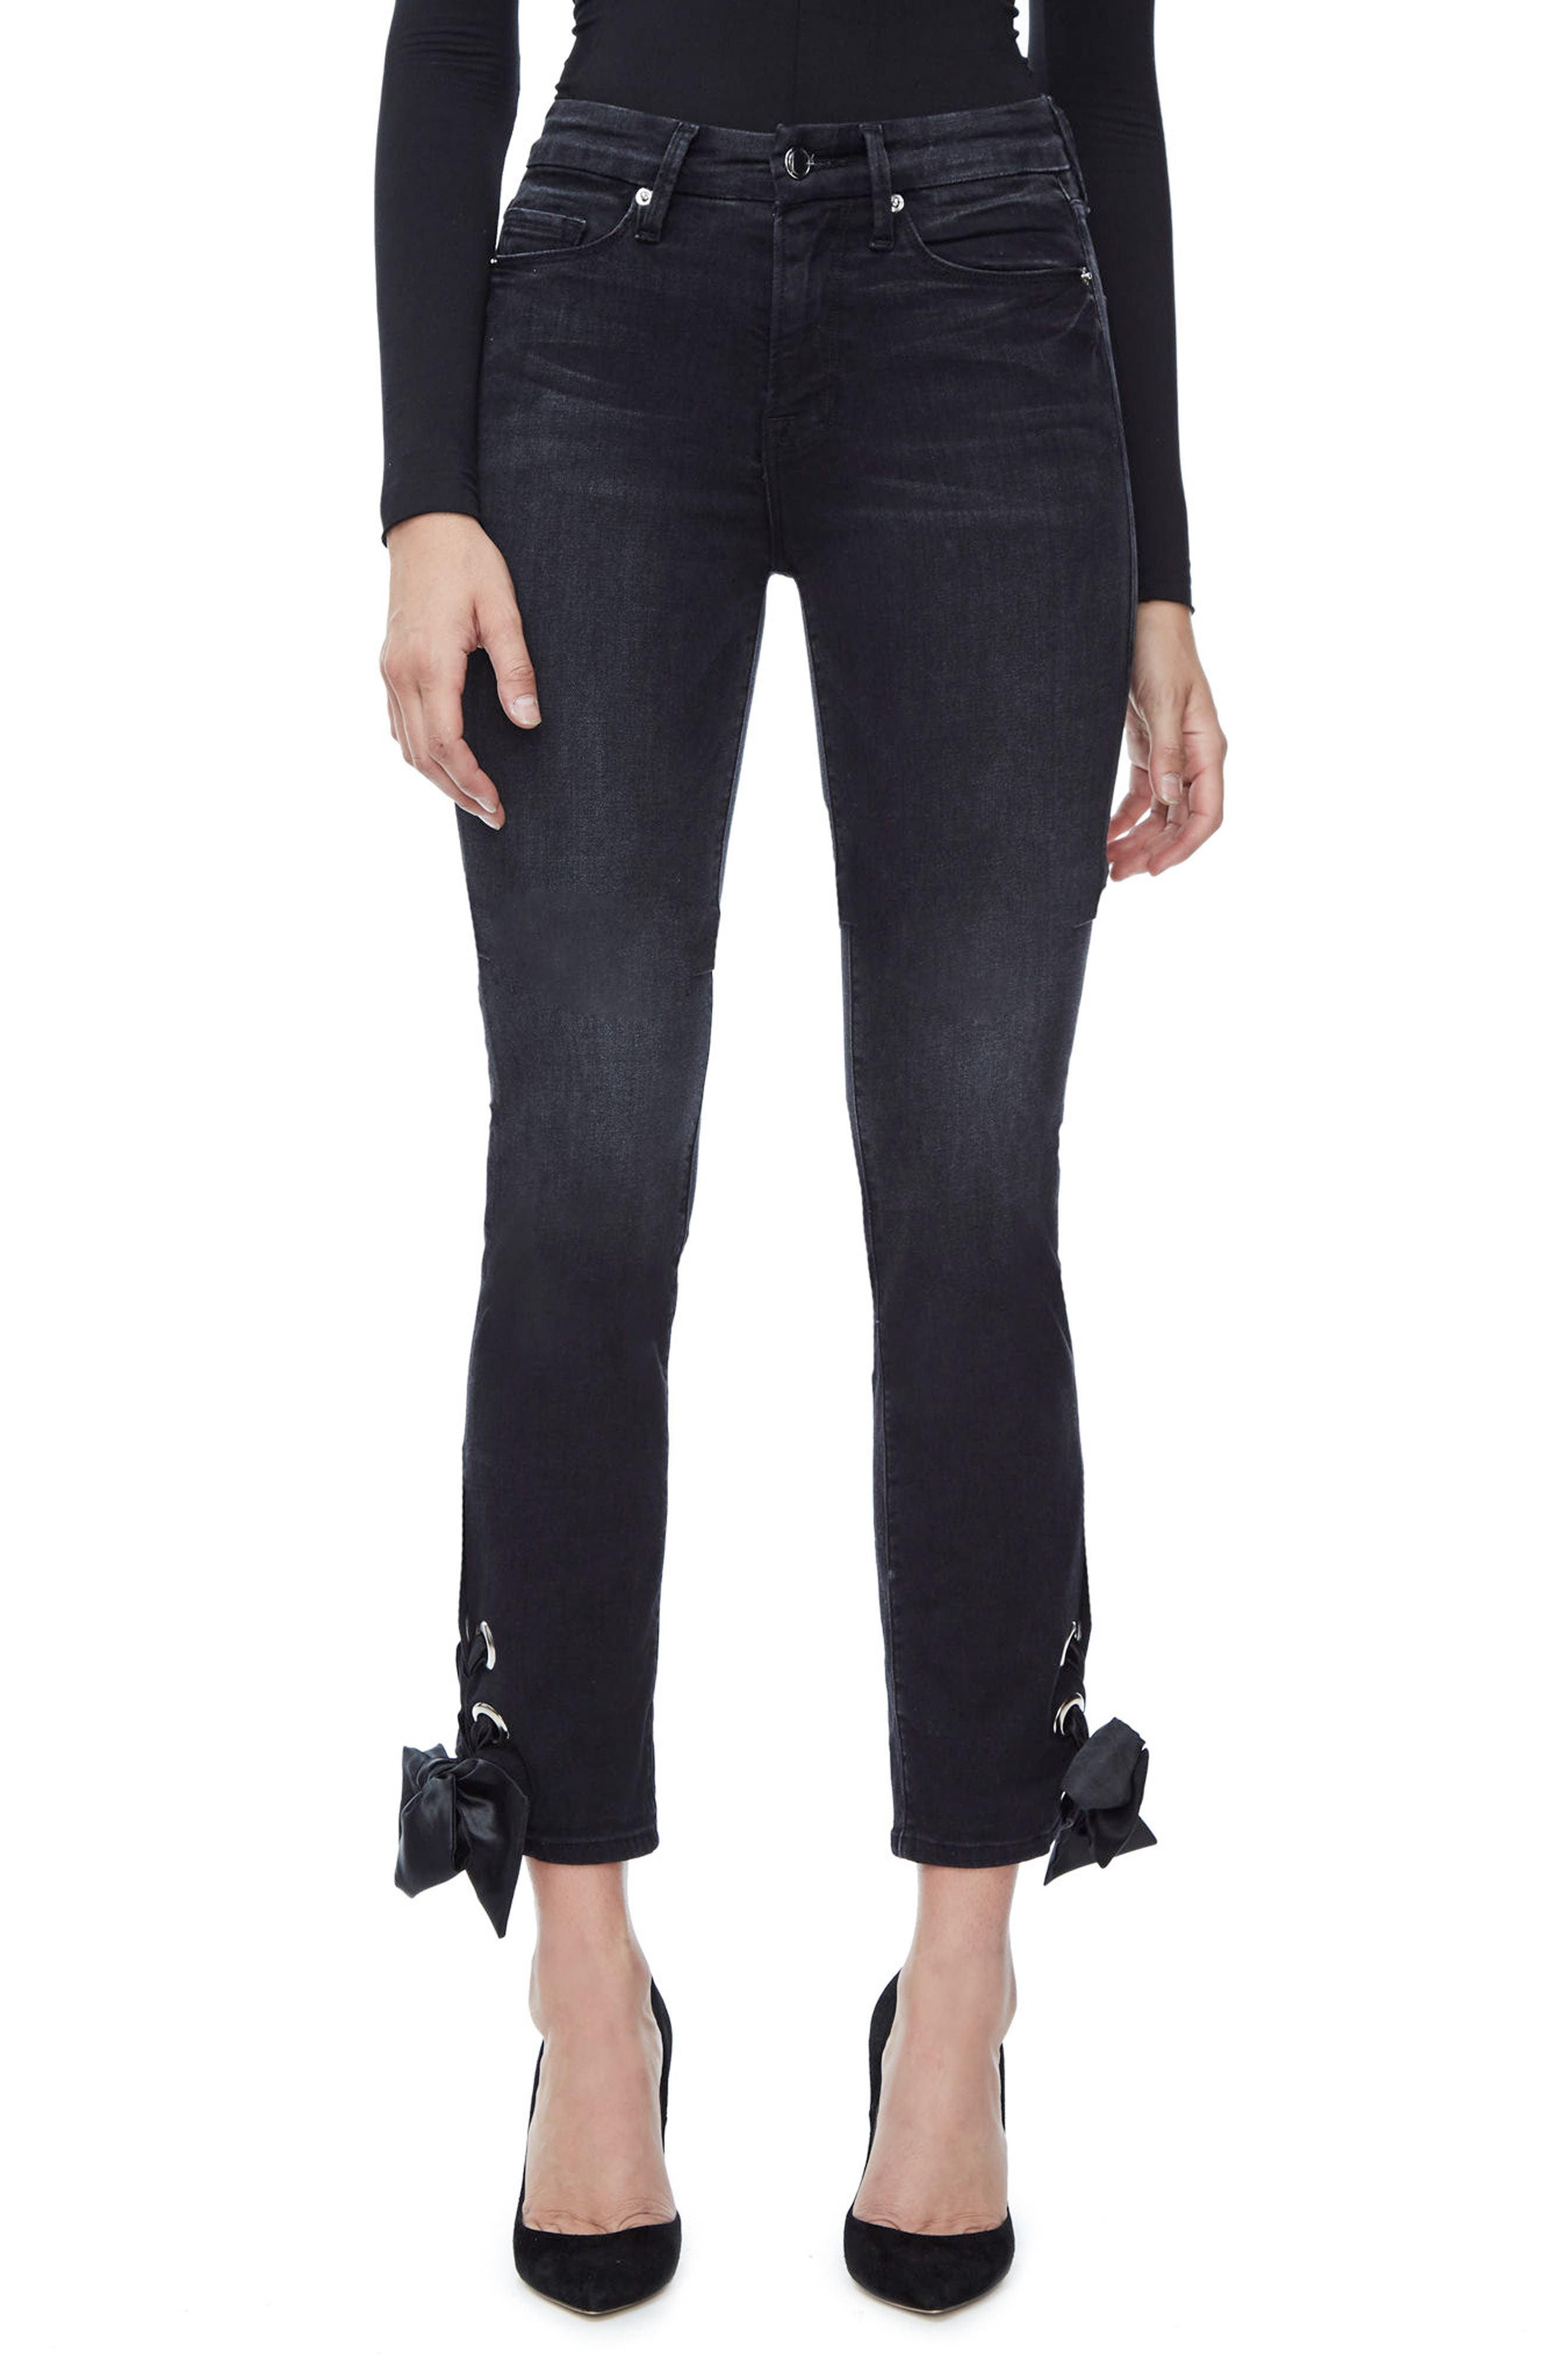 Alternate Image 1 Selected - Good American Good Straight Ankle Lace Skinny Jeans (Black 010) (Extended Sizes)